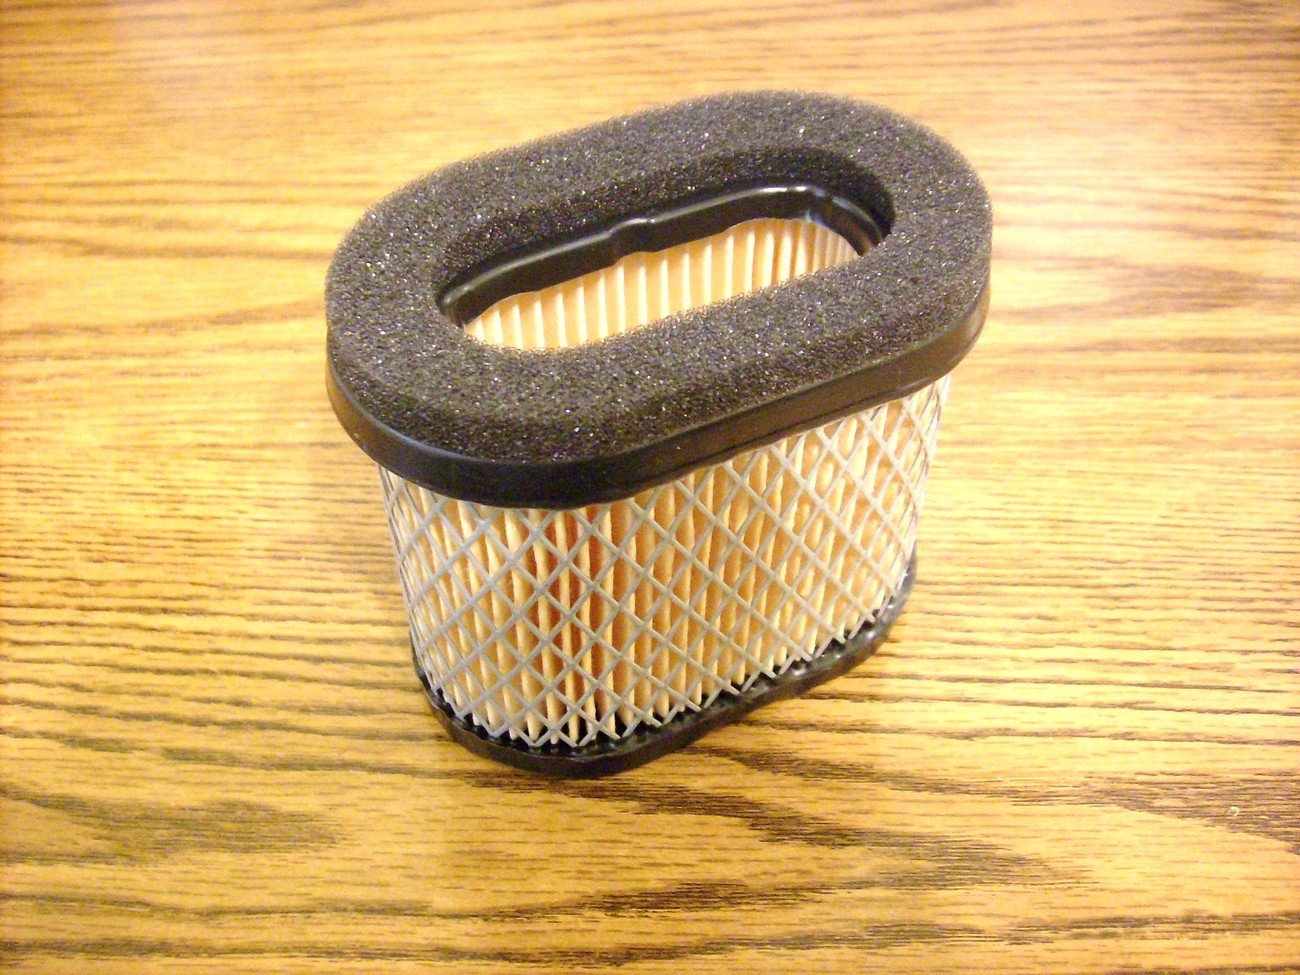 Briggs and Stratton Scotts Air Filter 498596, 690610, 697029, 33064, M147431